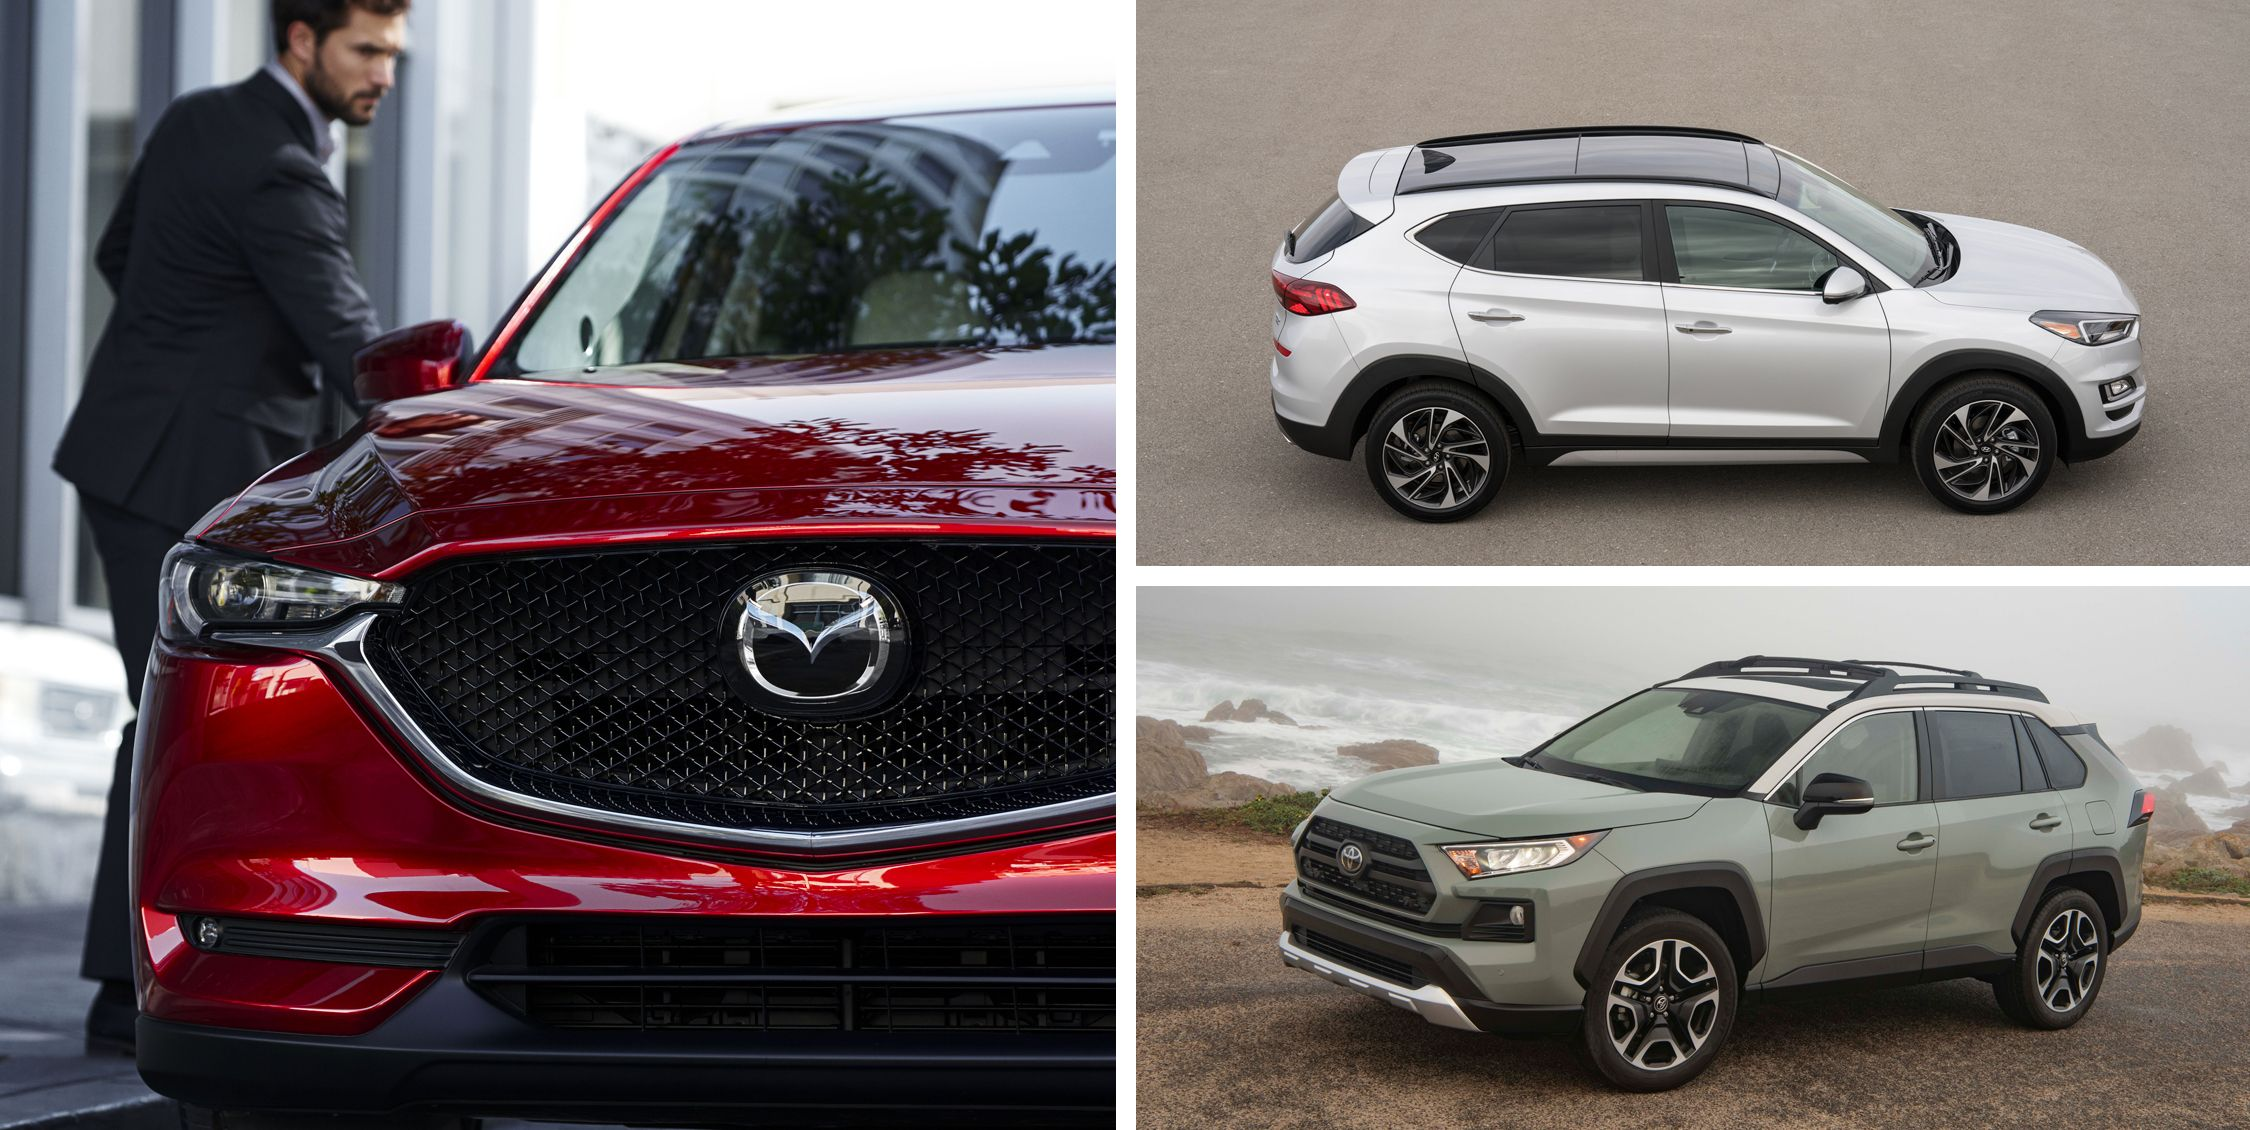 Every Compact Crossover SUV Ranked from Worst to Best